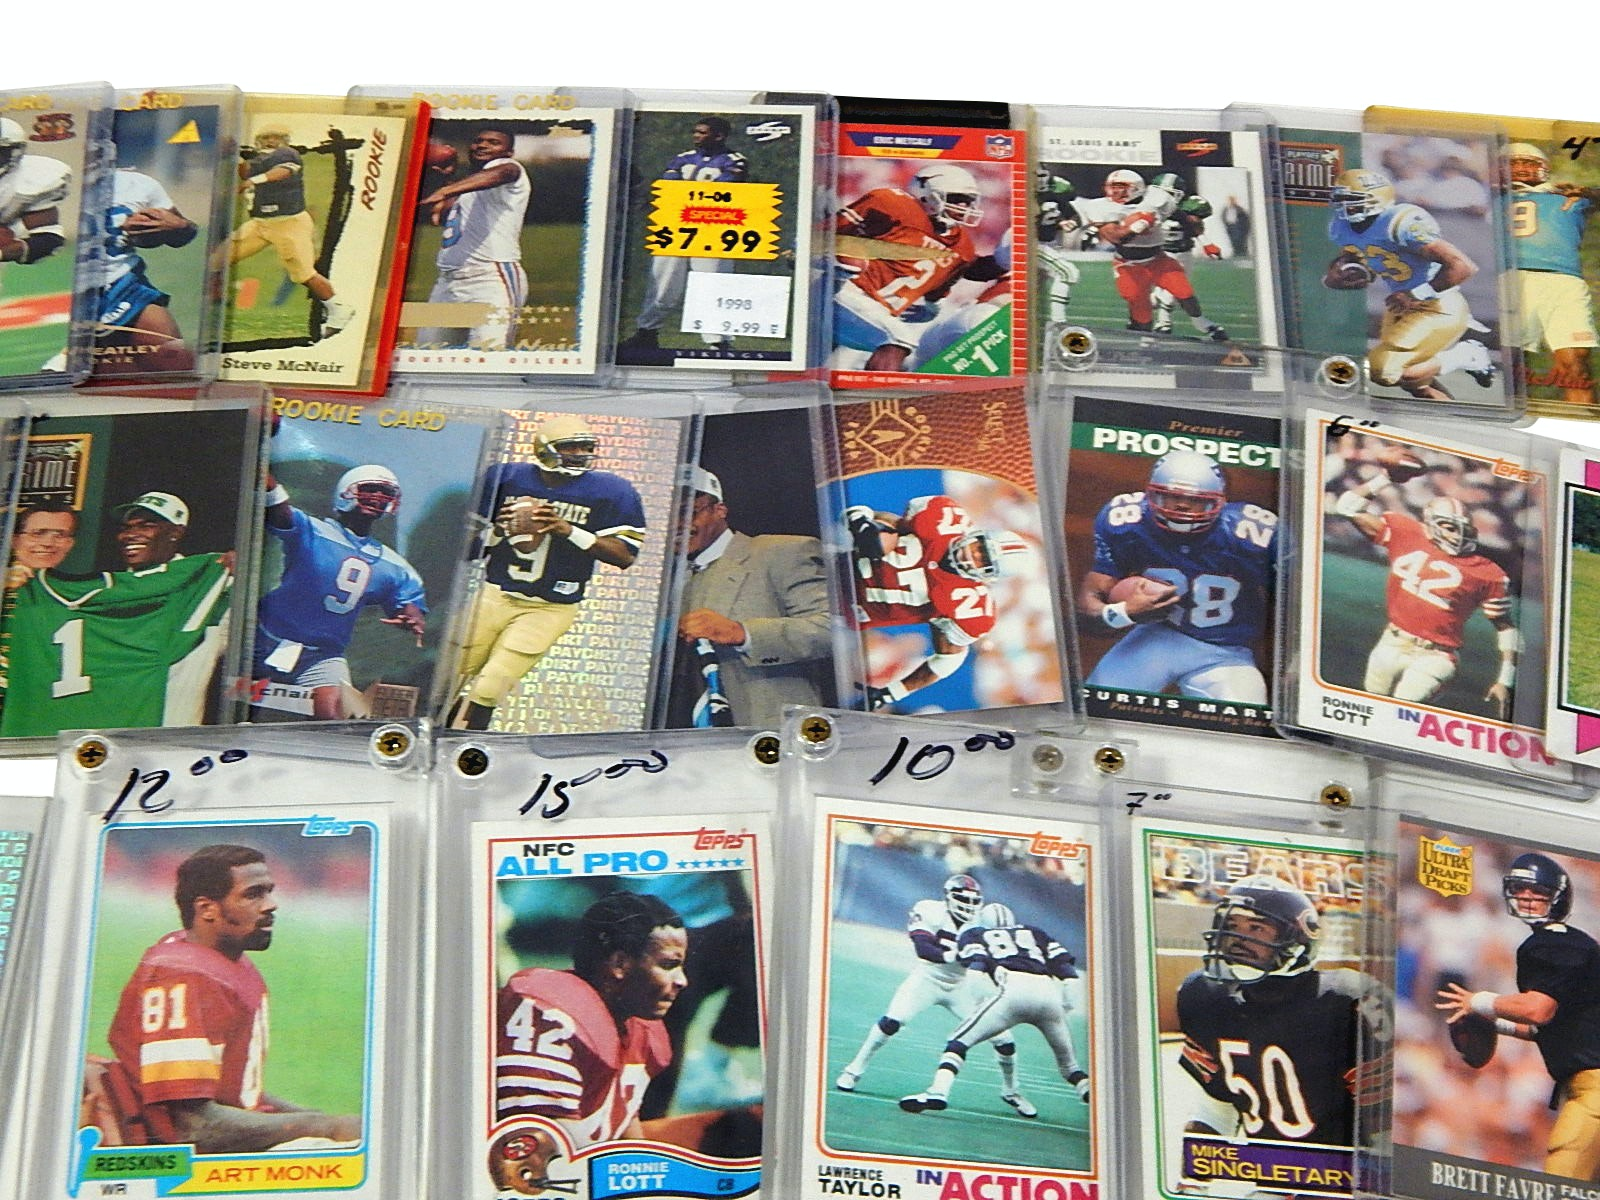 Football Star and HOF Rookie Card Collection with Singletary, Favre, Lott, More